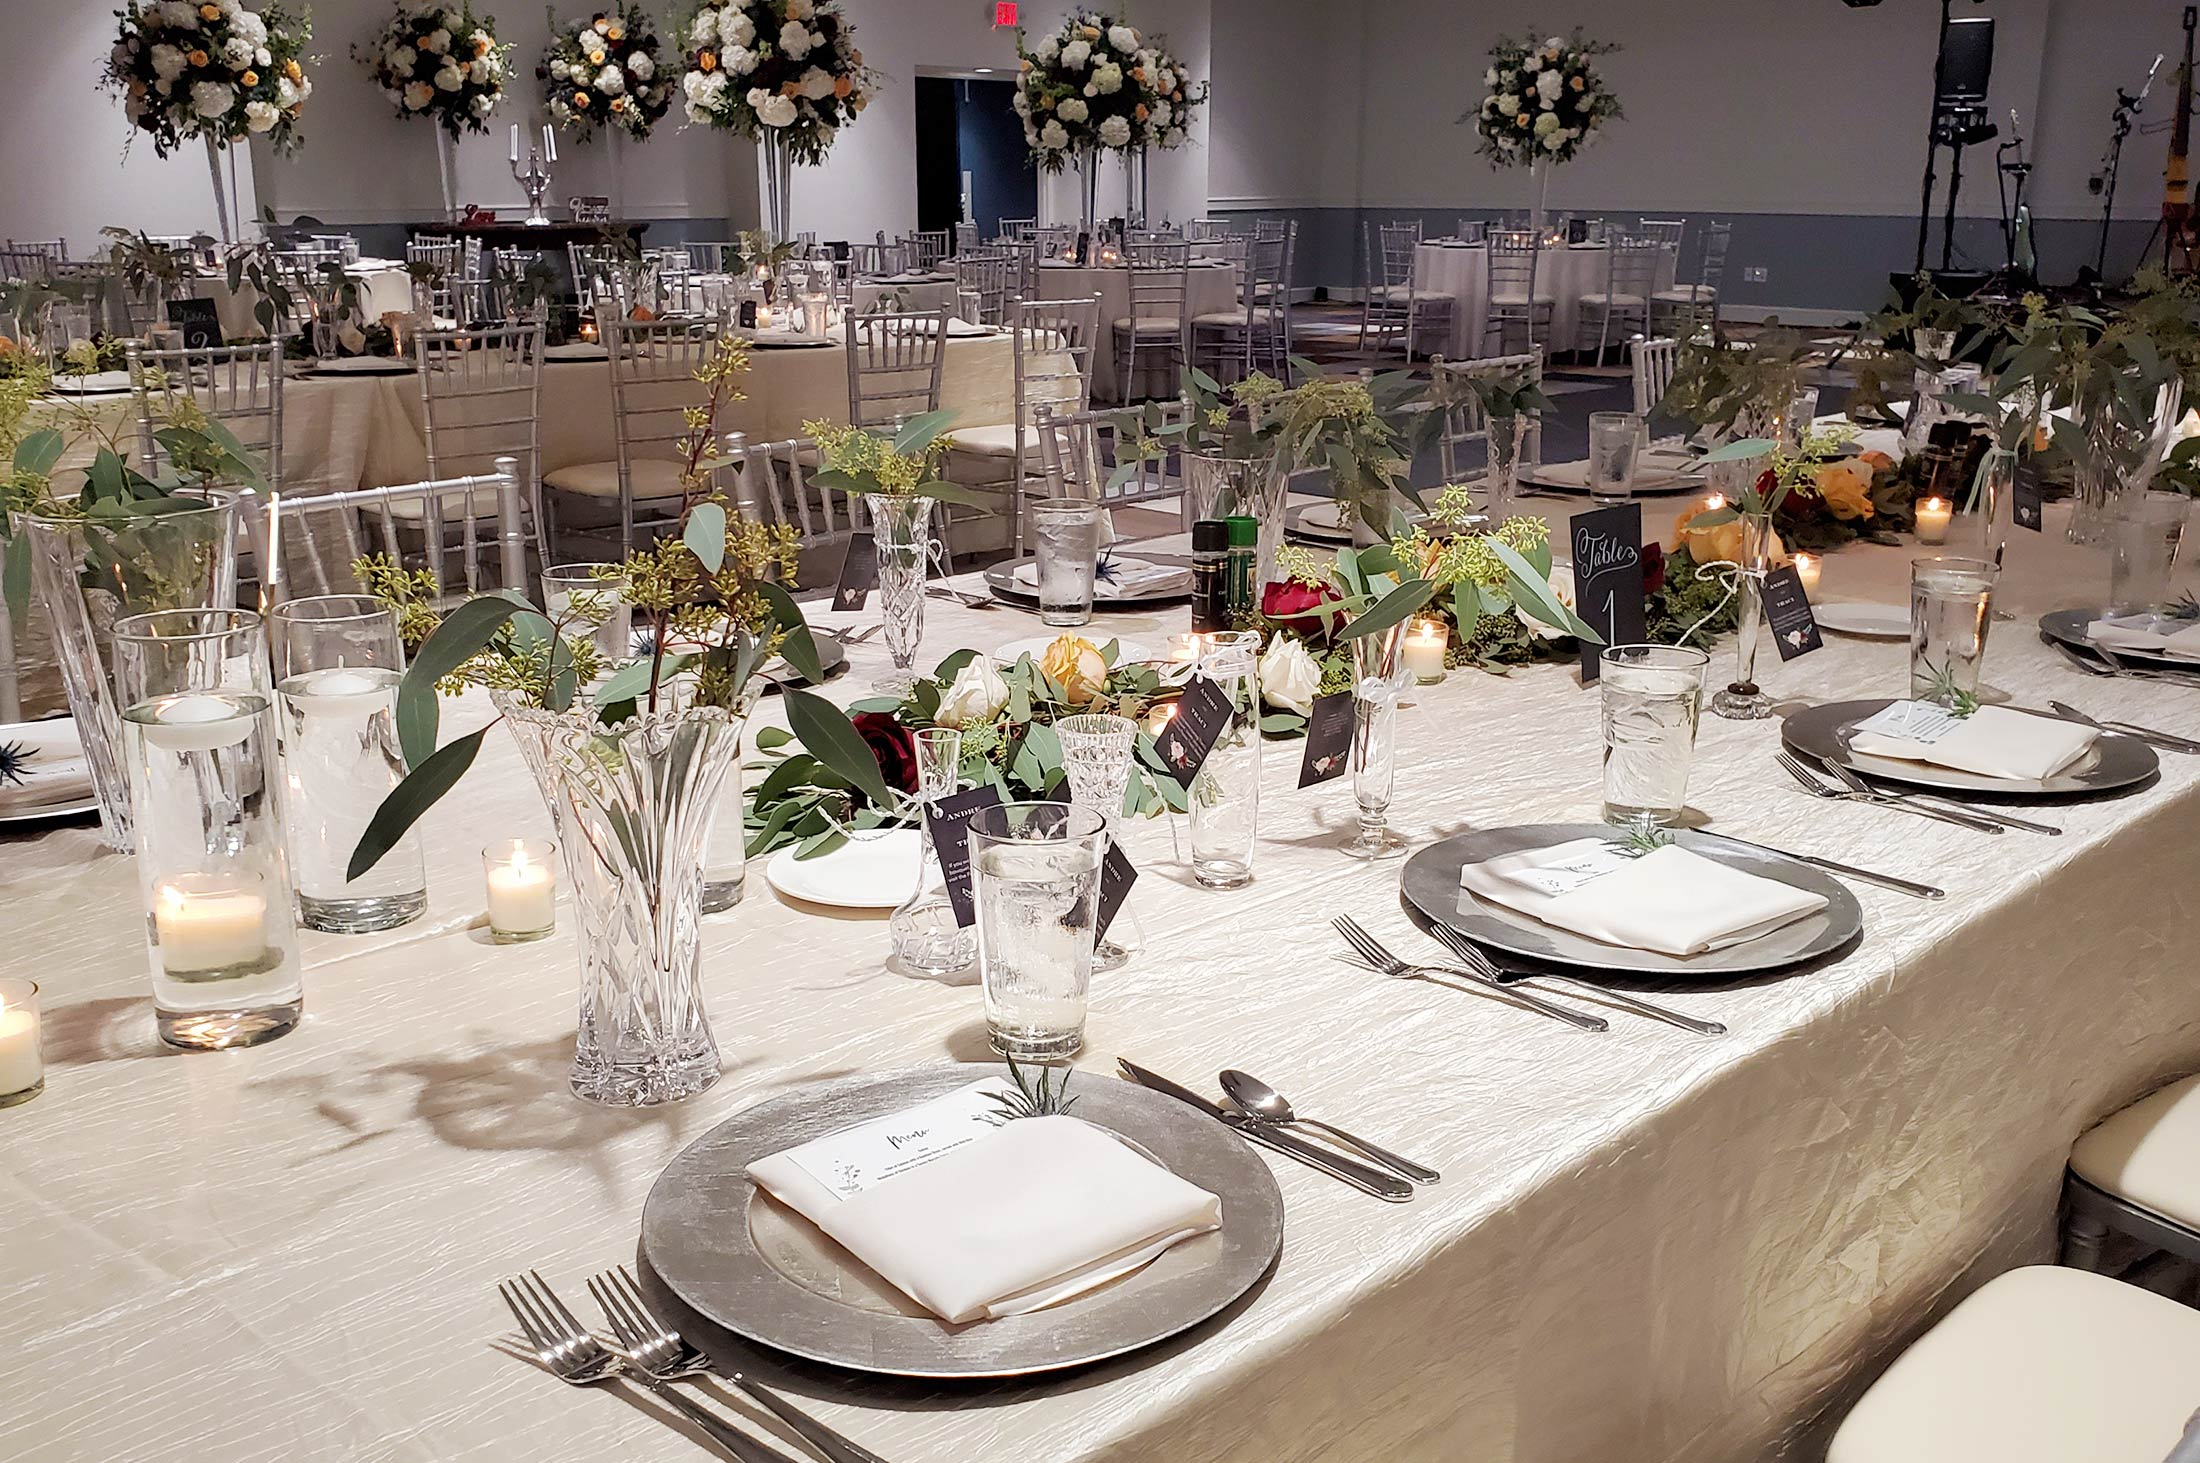 Reception in Monarch Ballroom, place settings